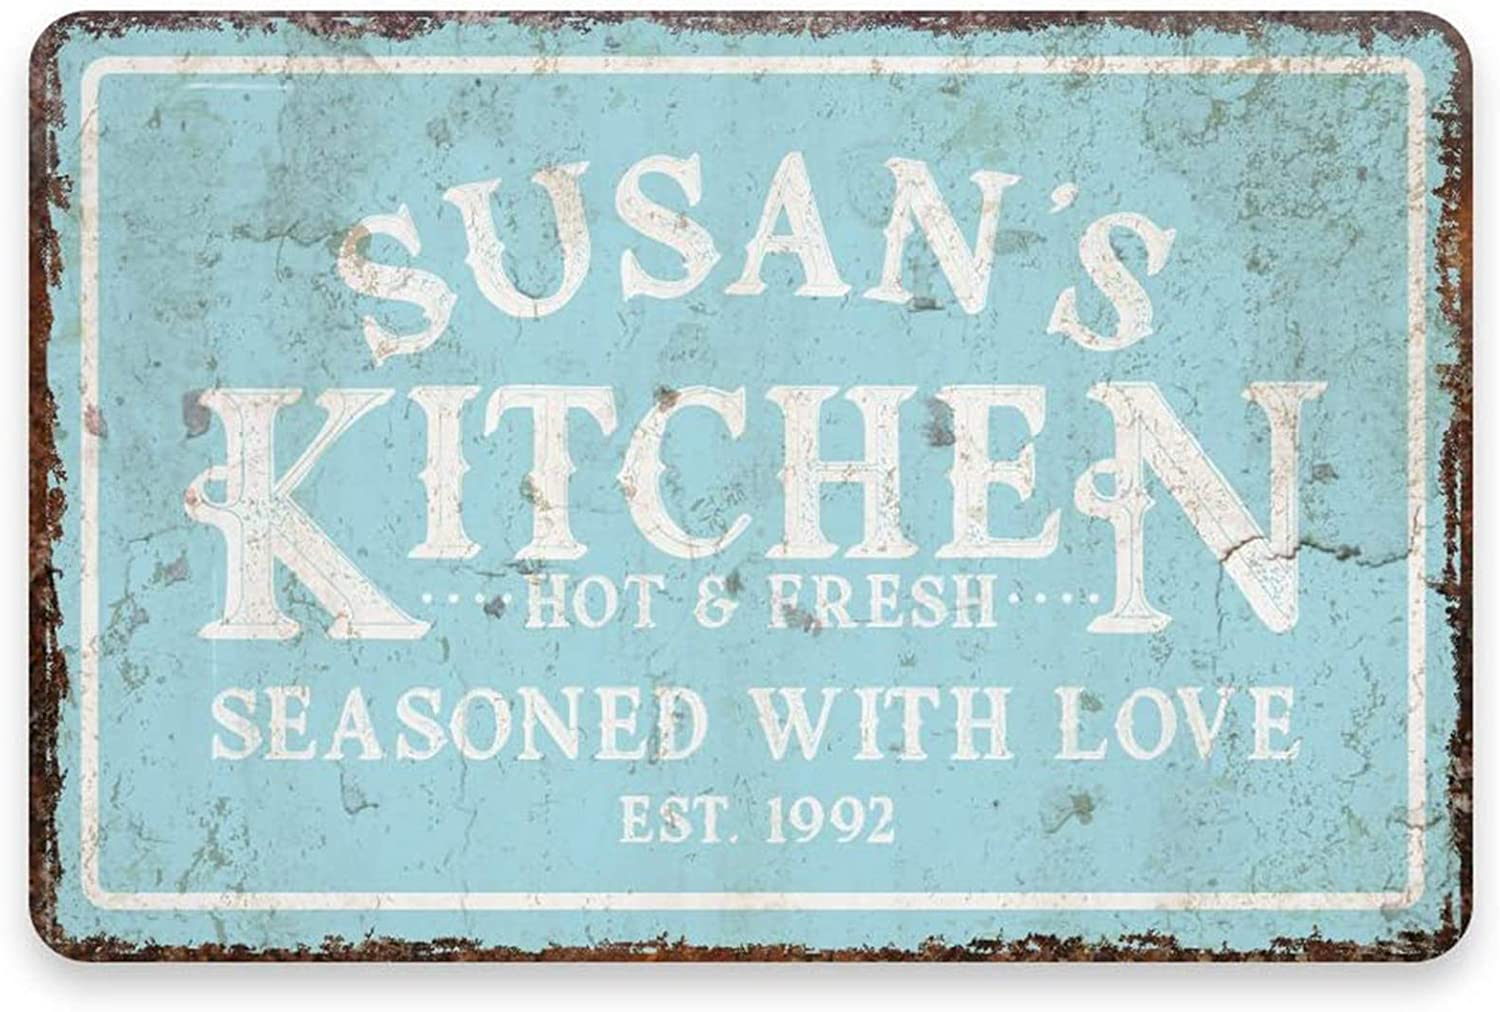 MAIYUAN Personalized Kitchen Signs, Metal Wall Decoration Signs, Home Decoration Art Signs